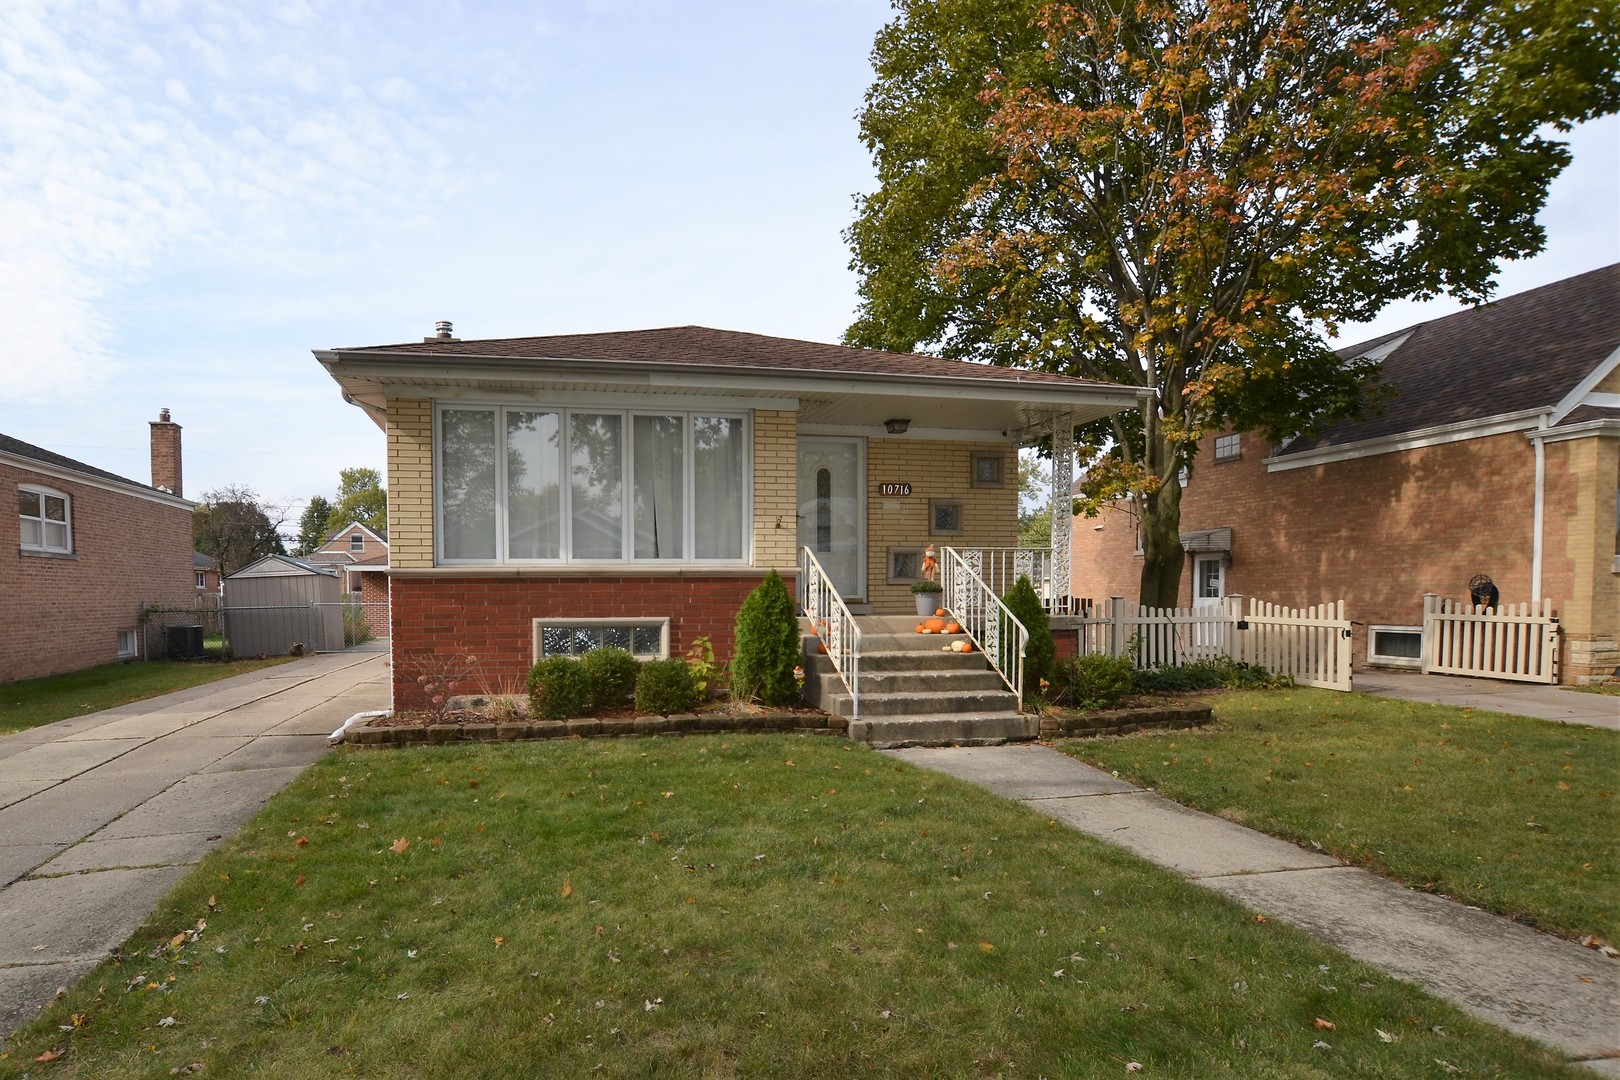 Photo of 10716 Kenneth Oak Lawn IL 60453